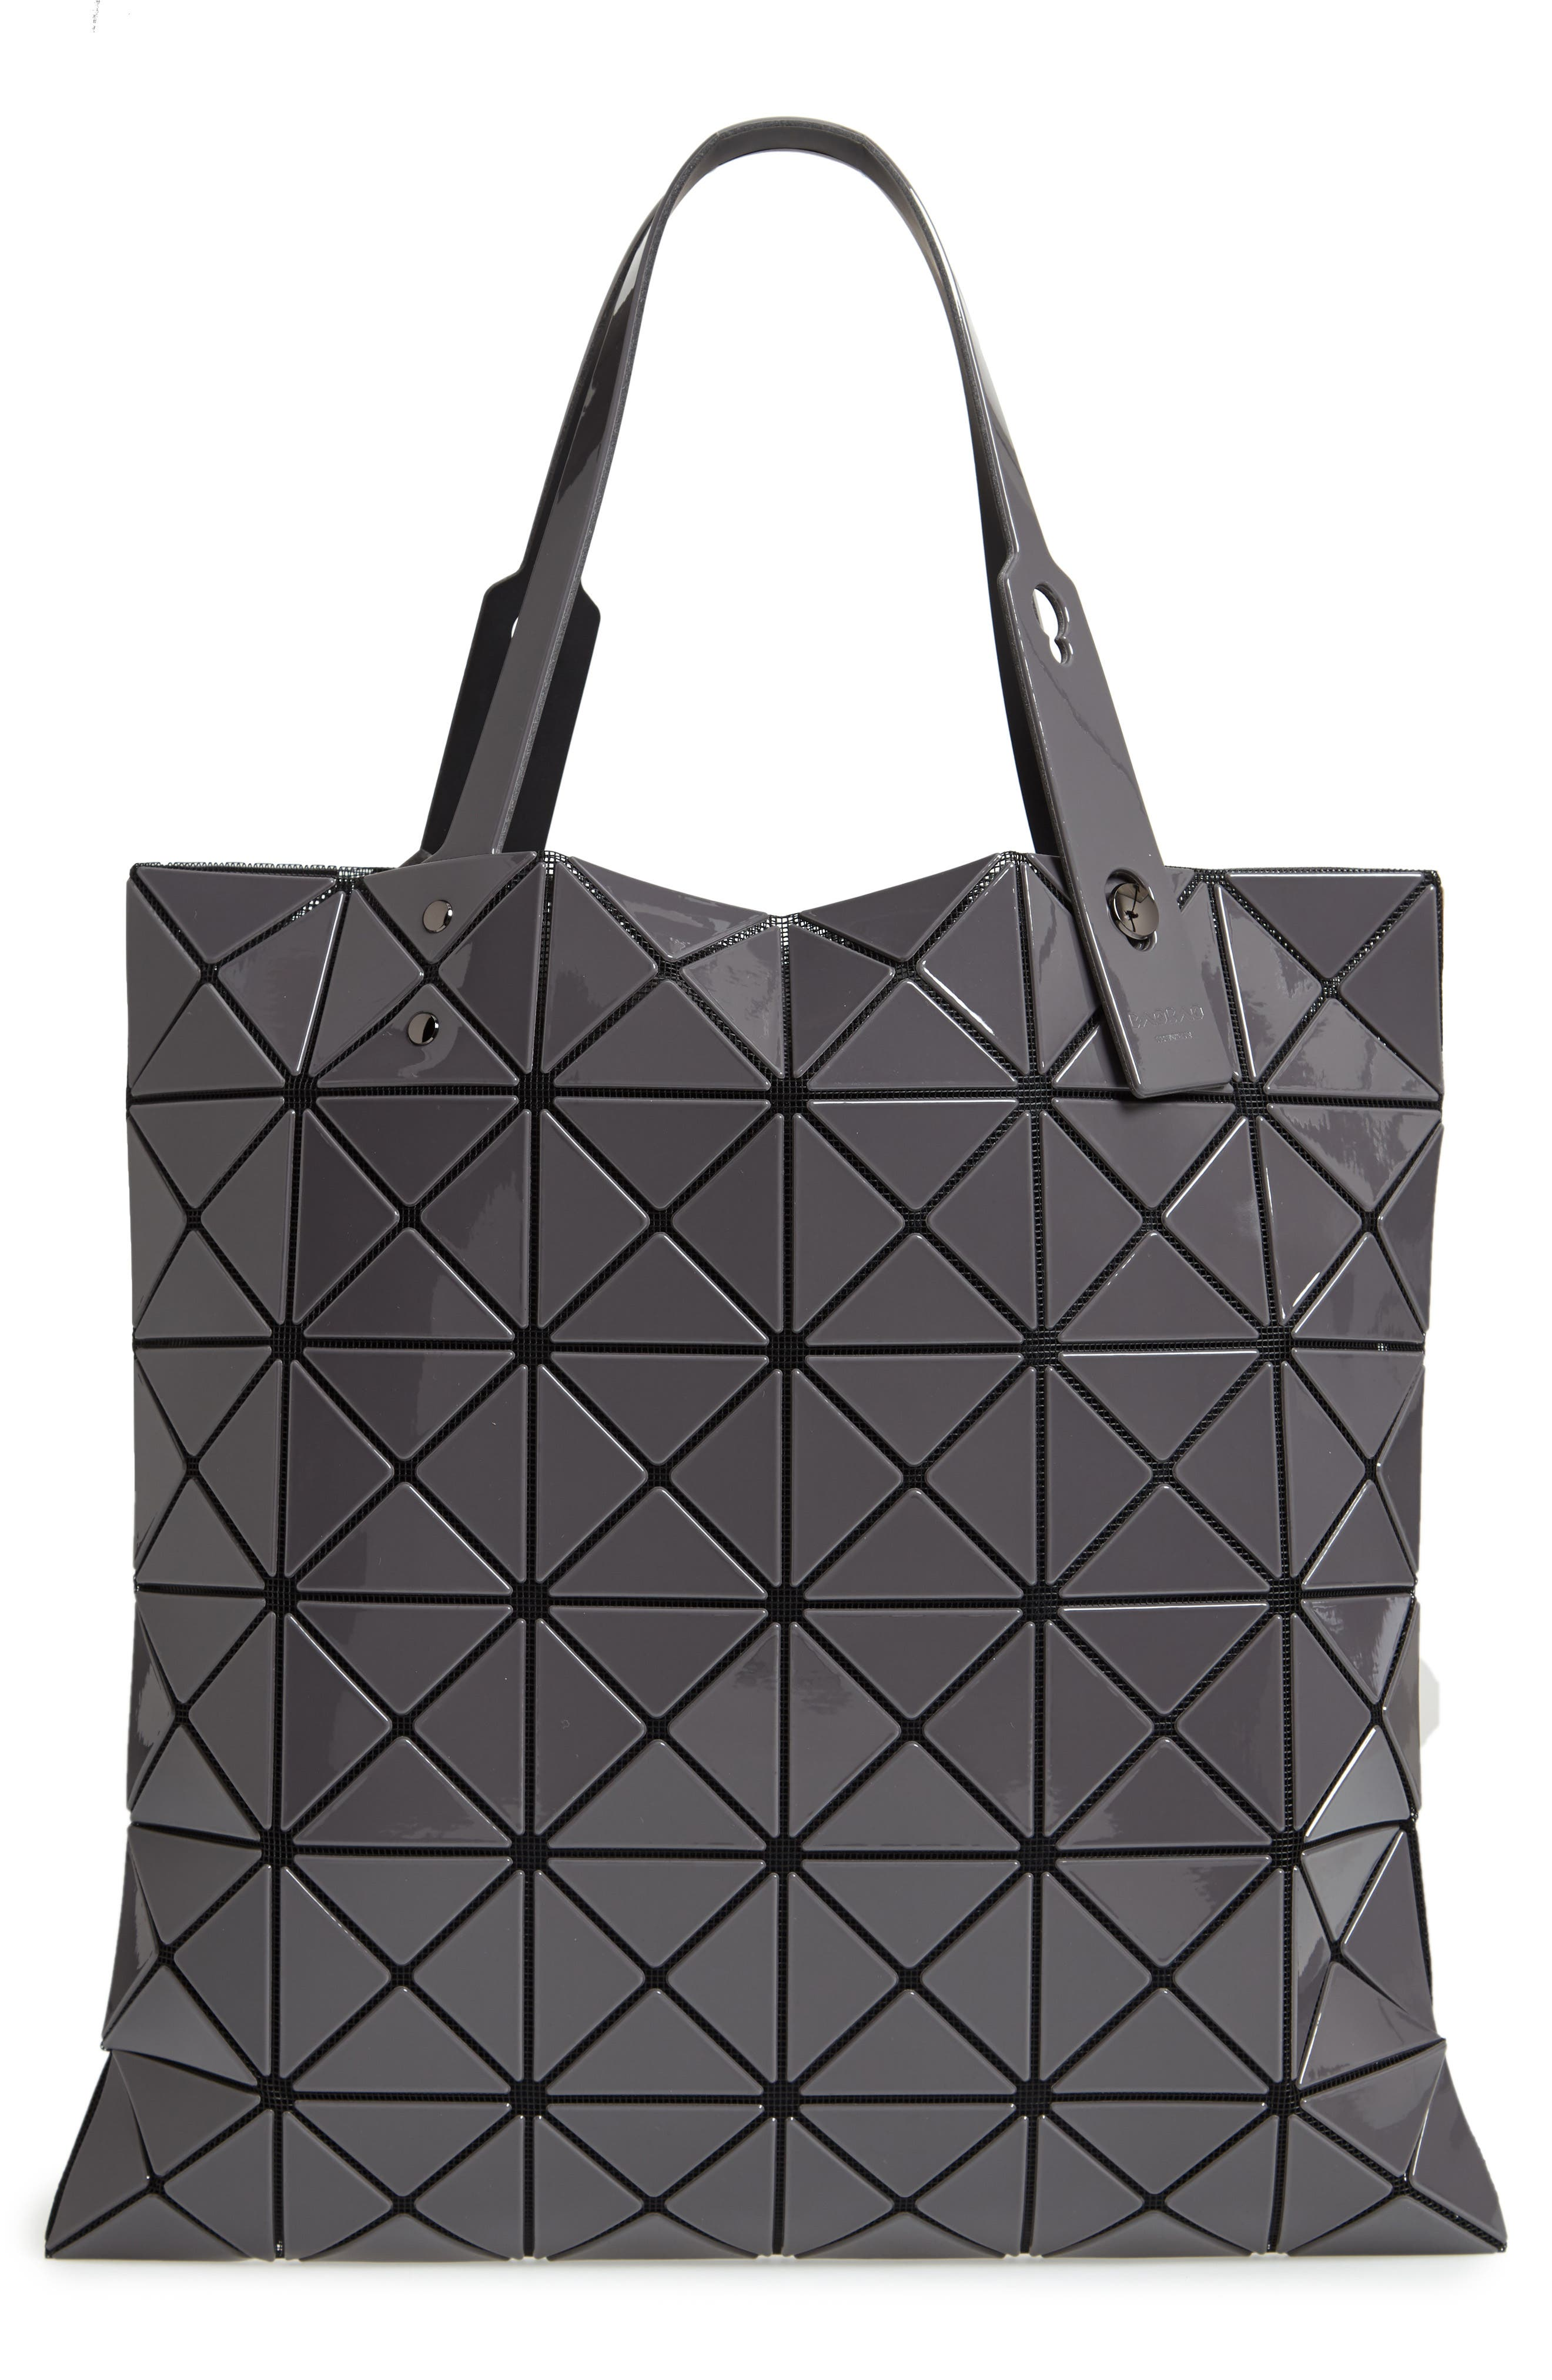 Lucent Two-Tone Tote Bag,                             Alternate thumbnail 3, color,                             LIGHT GRAY/ CHARCOAL